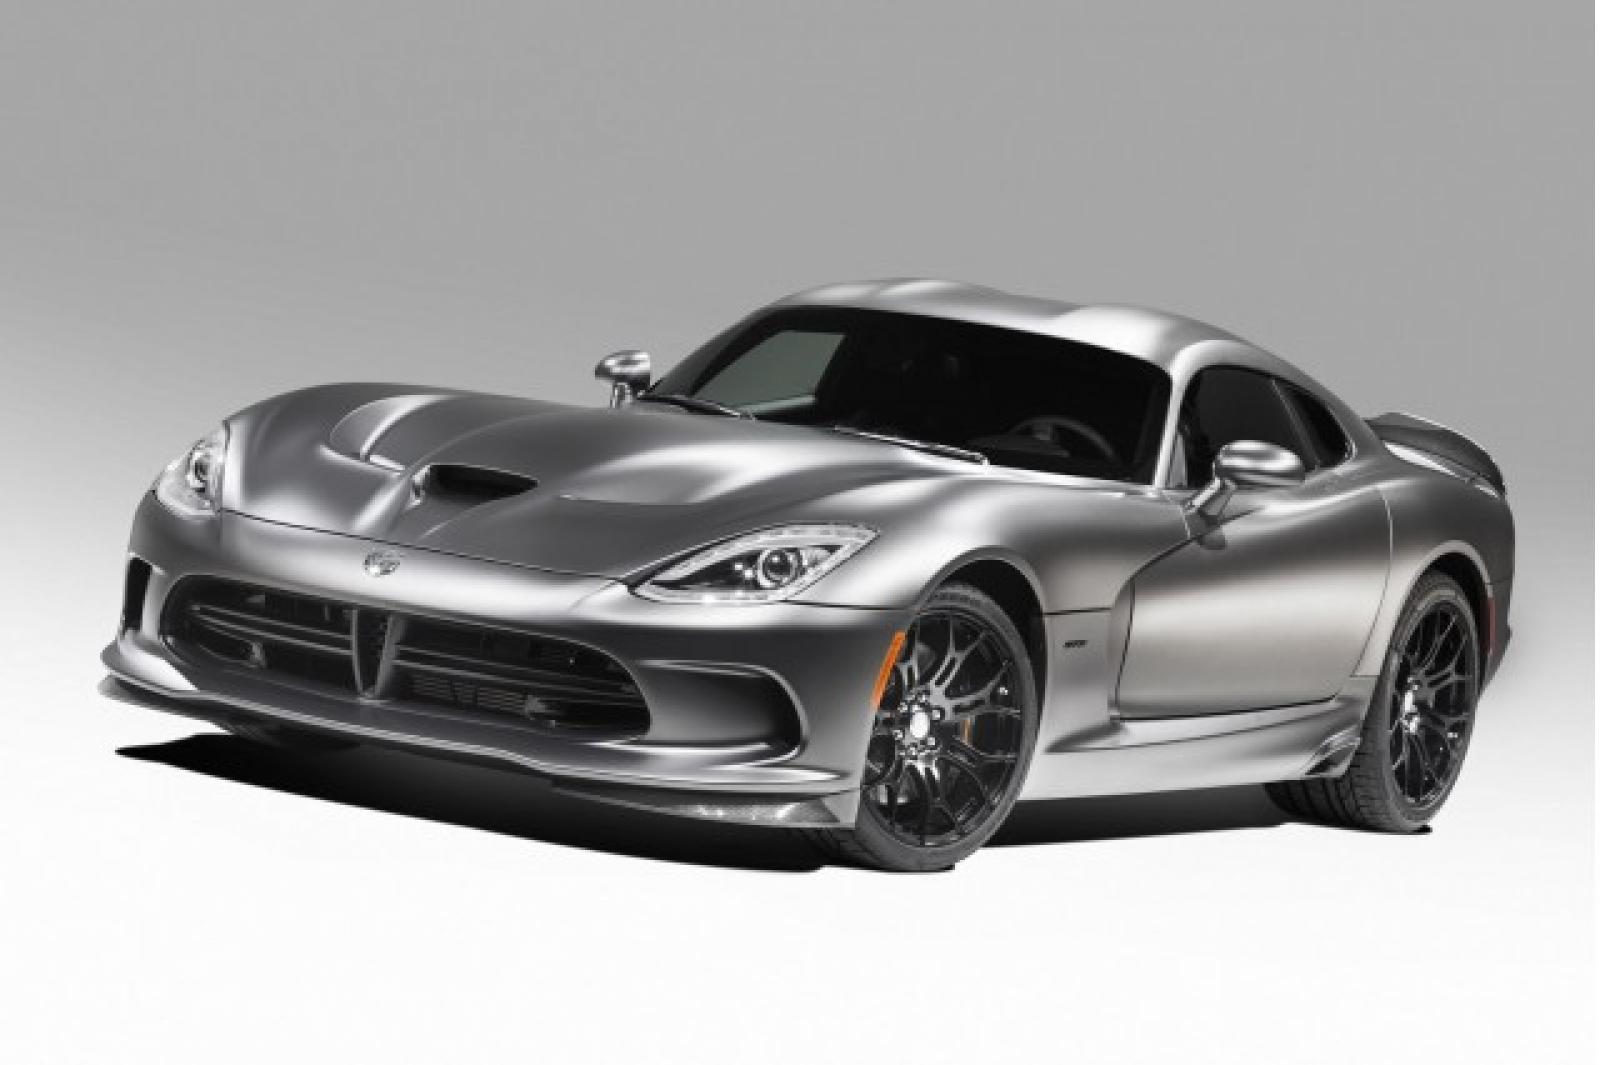 2015 dodge srt viper information and photos zombiedrive. Black Bedroom Furniture Sets. Home Design Ideas